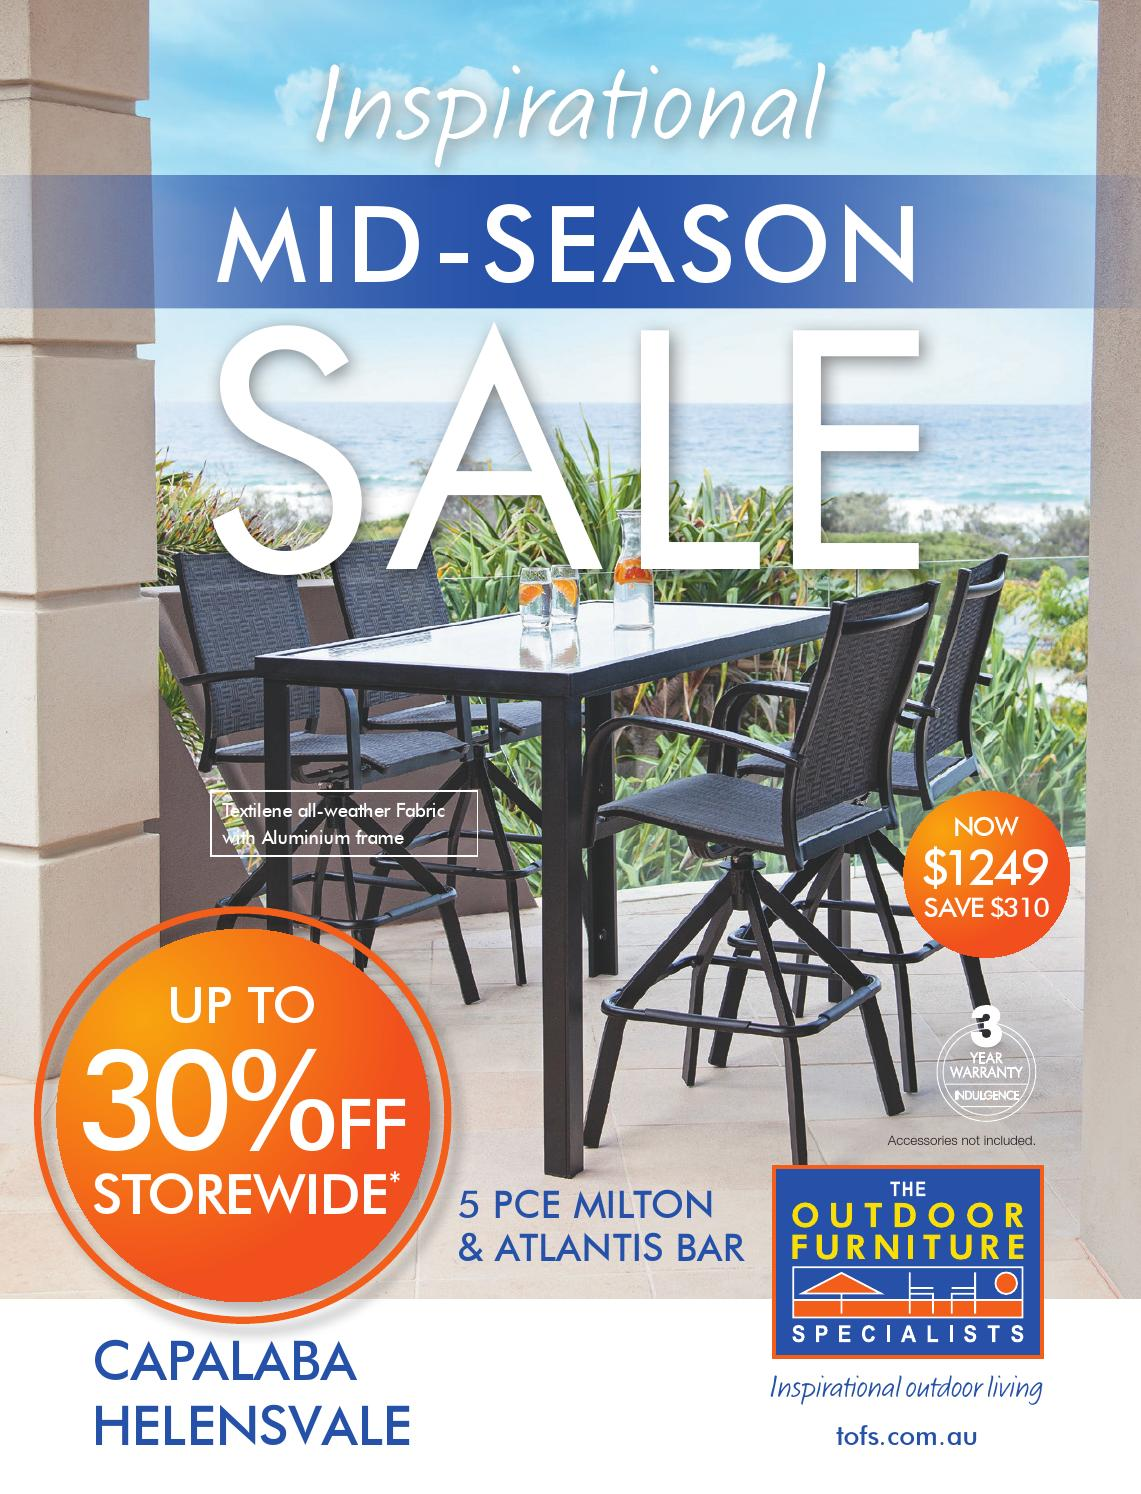 Mid season sale capalaba helensvale by tofs the outdoor furniture specialists issuu